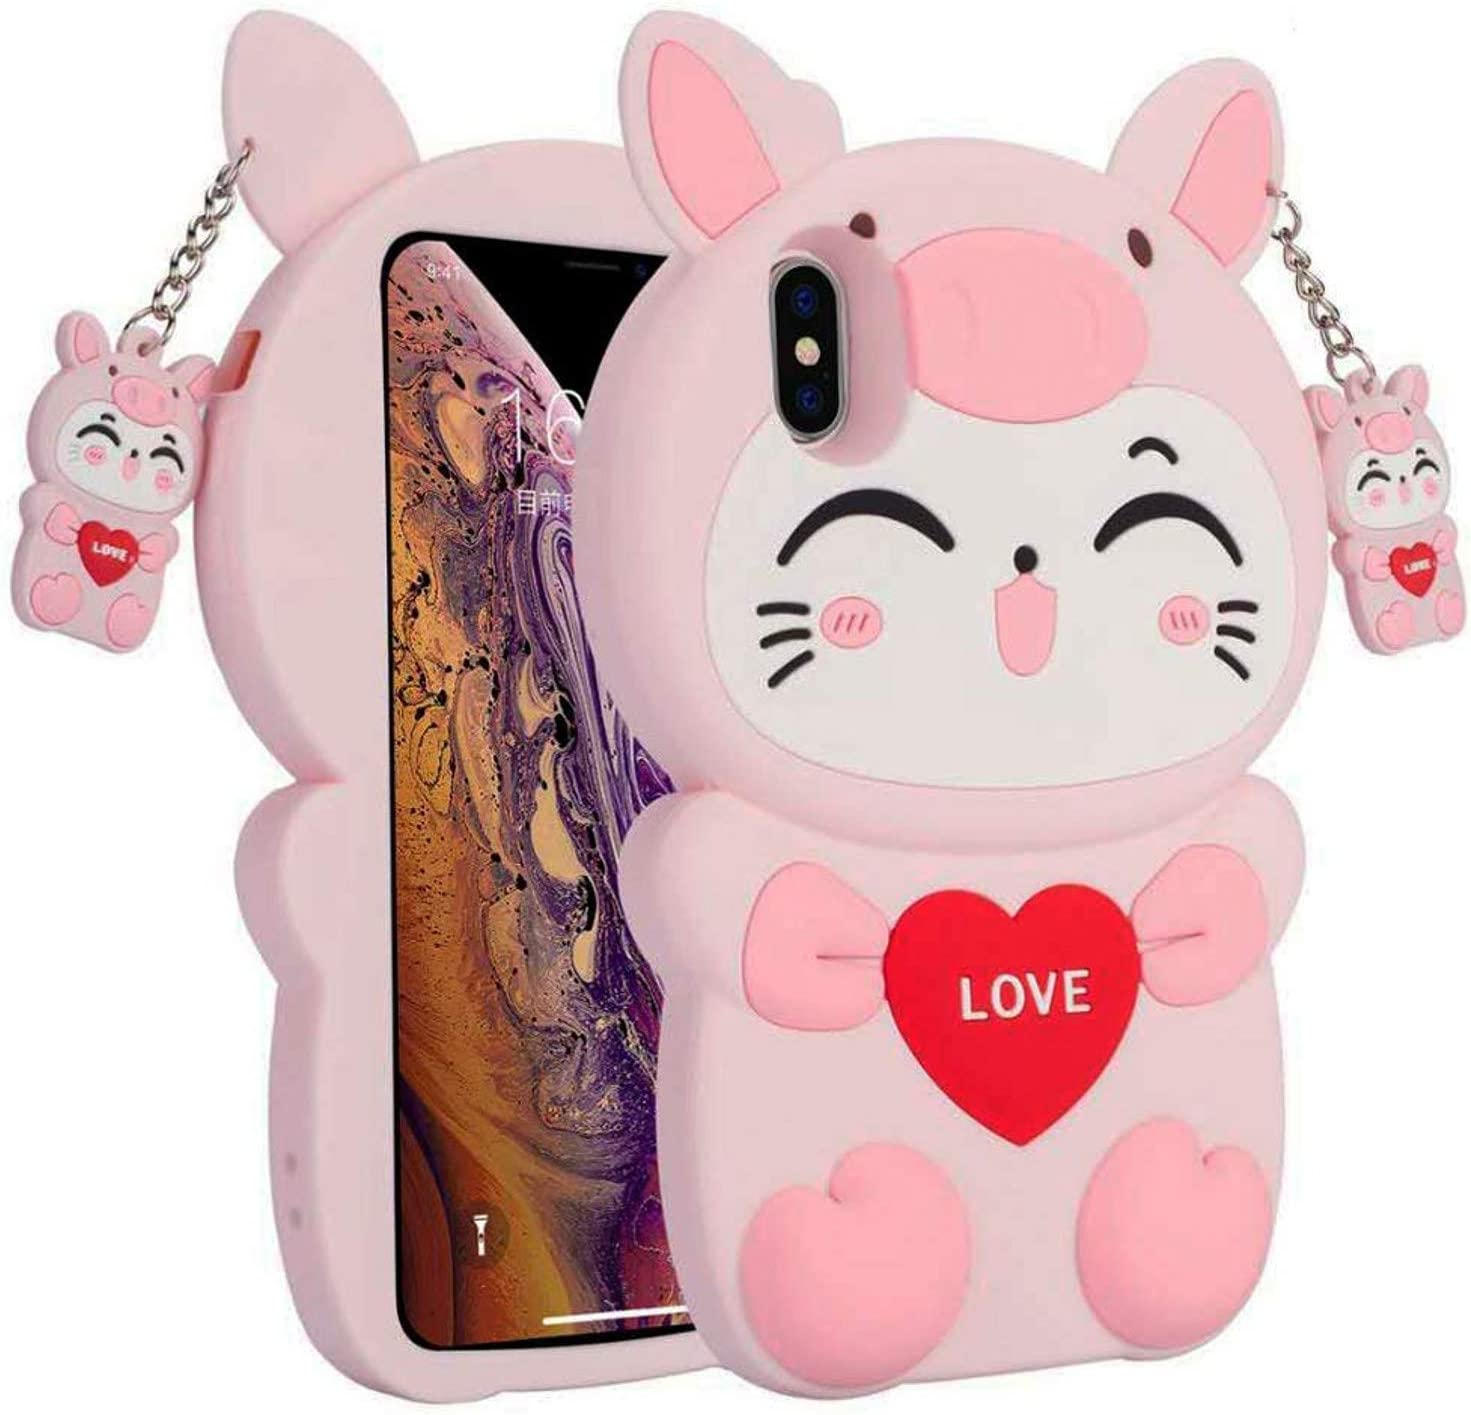 Amazon Com Redmi Note 7 Pro Pig Cat Phone Case 3d Cartoon Animal Character Design Cute Soft Silicone Kawaii Cover Cool Cases For Kids Boys Girls Pink Xiaomi Redmi Note 7